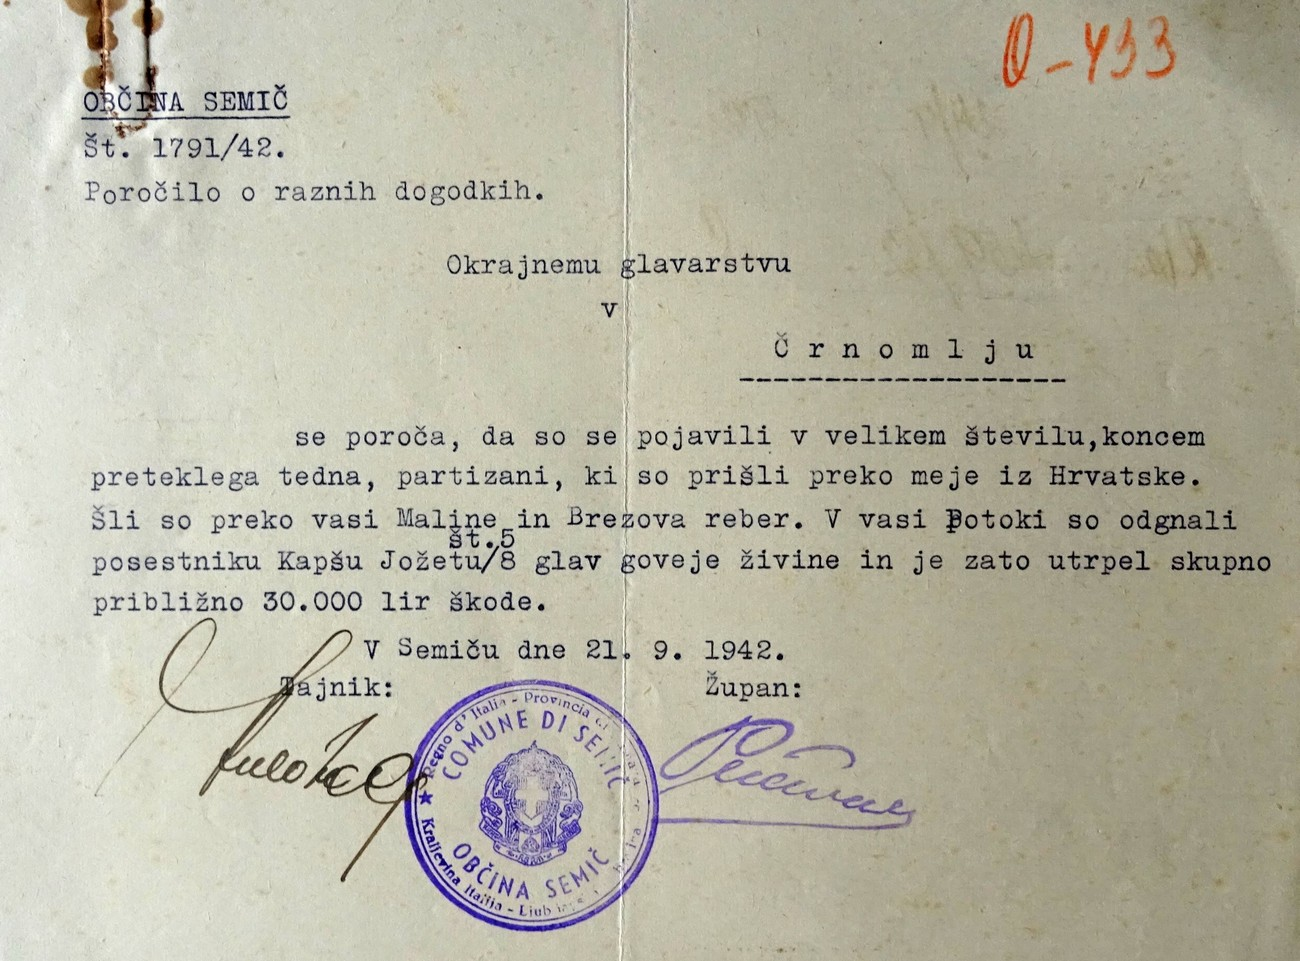 The Municipality of Semič wrote the following in a report dated 21 September 1942: »We are reporting to the District Governor in Črnomelj that at the end of the previous week a great number of partisans arrived, crossing the border from Croatia.« Archives of the RS.